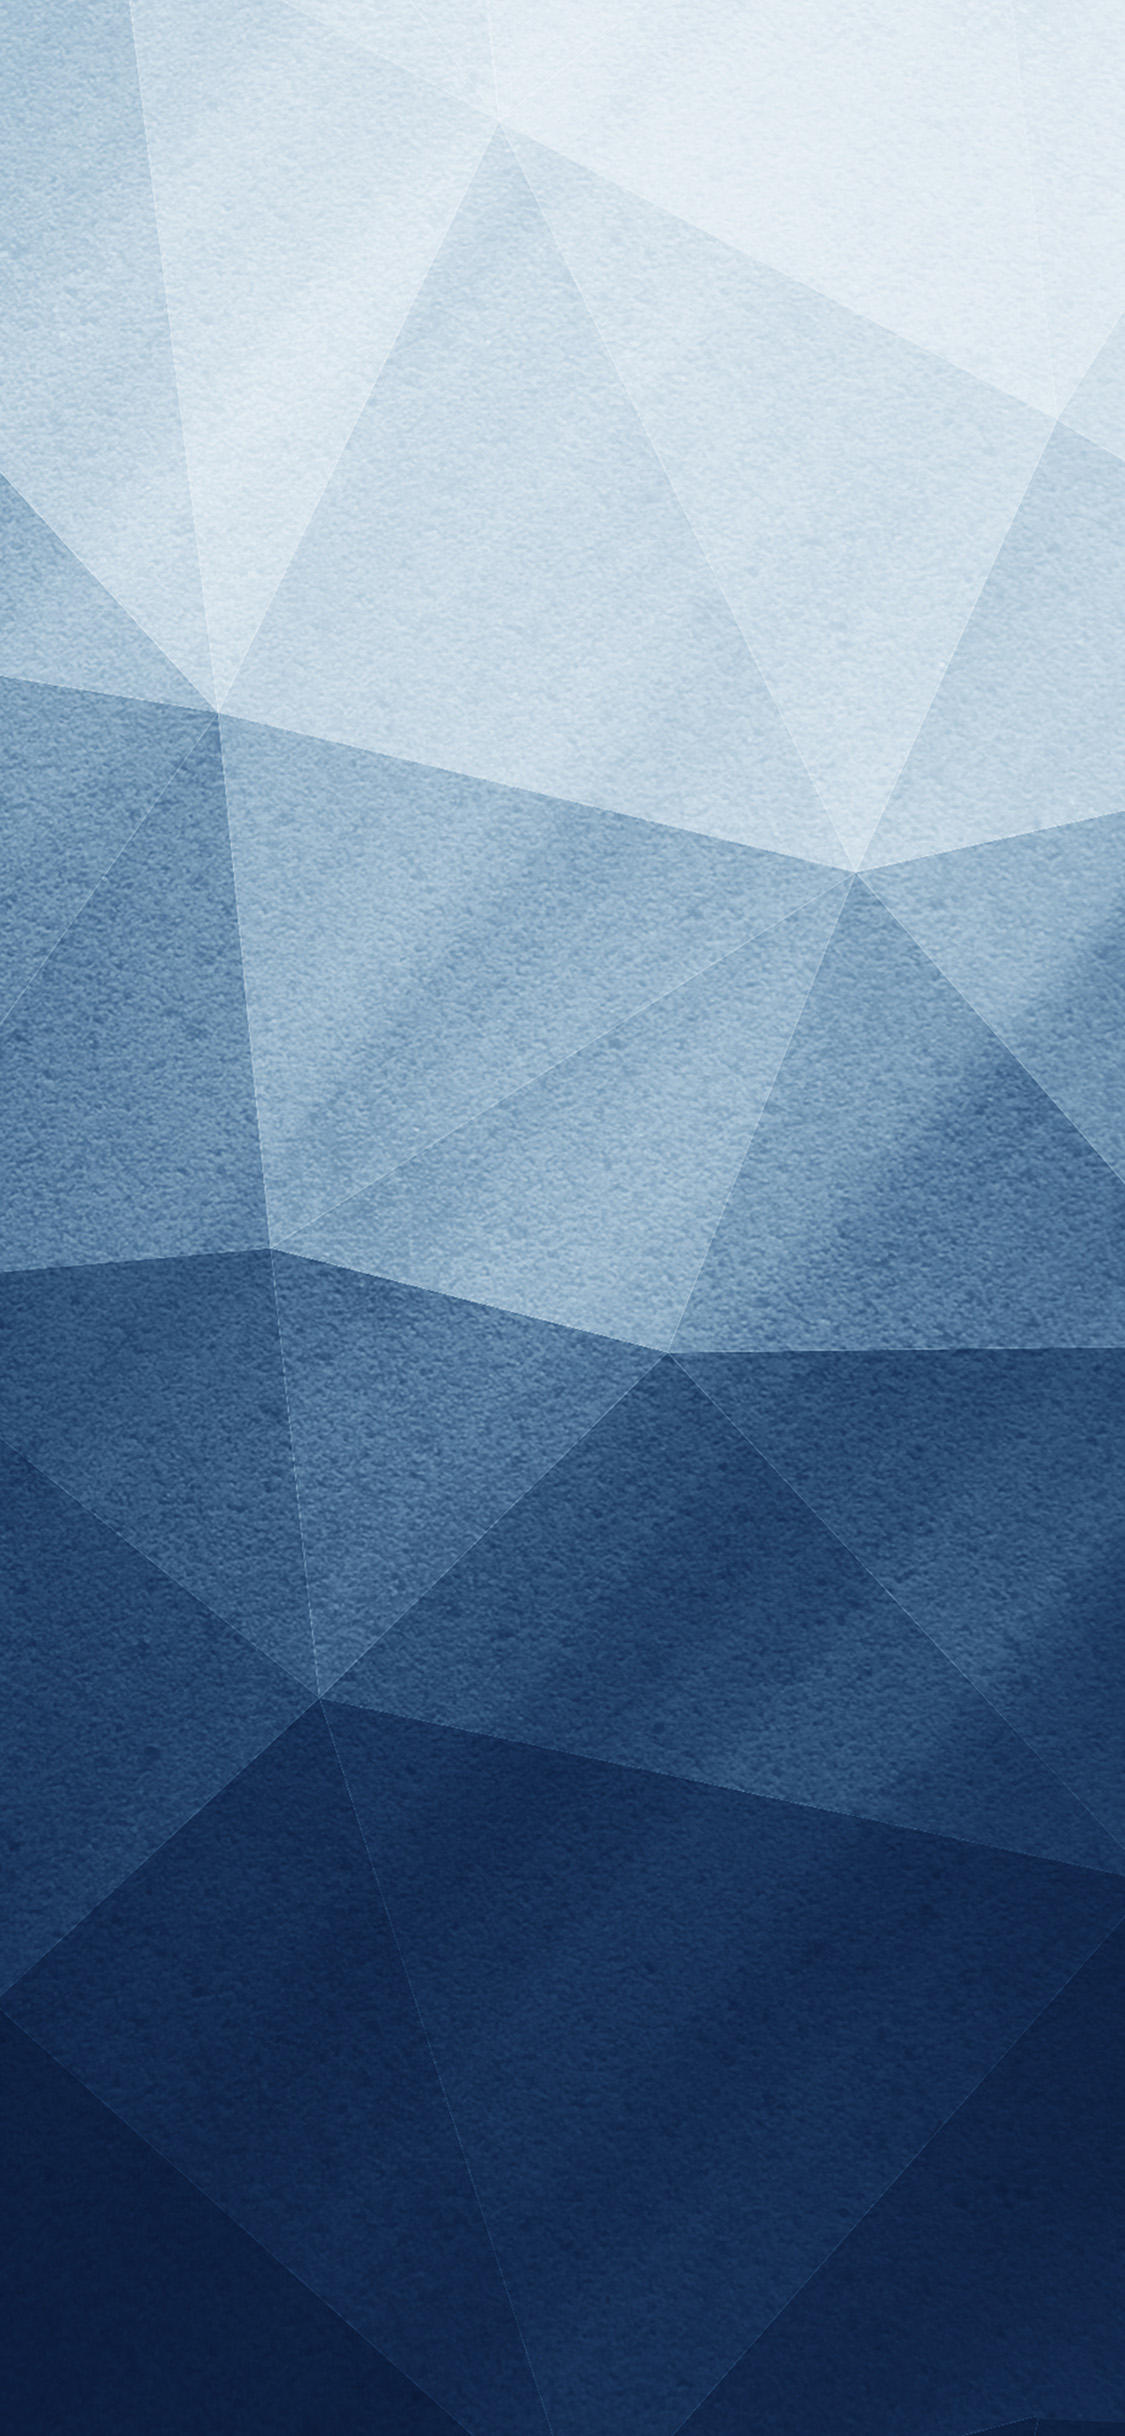 Car Wallpapers For Nexus 5 Vz49 Polygon Blue Texture Abstract Pattern Background